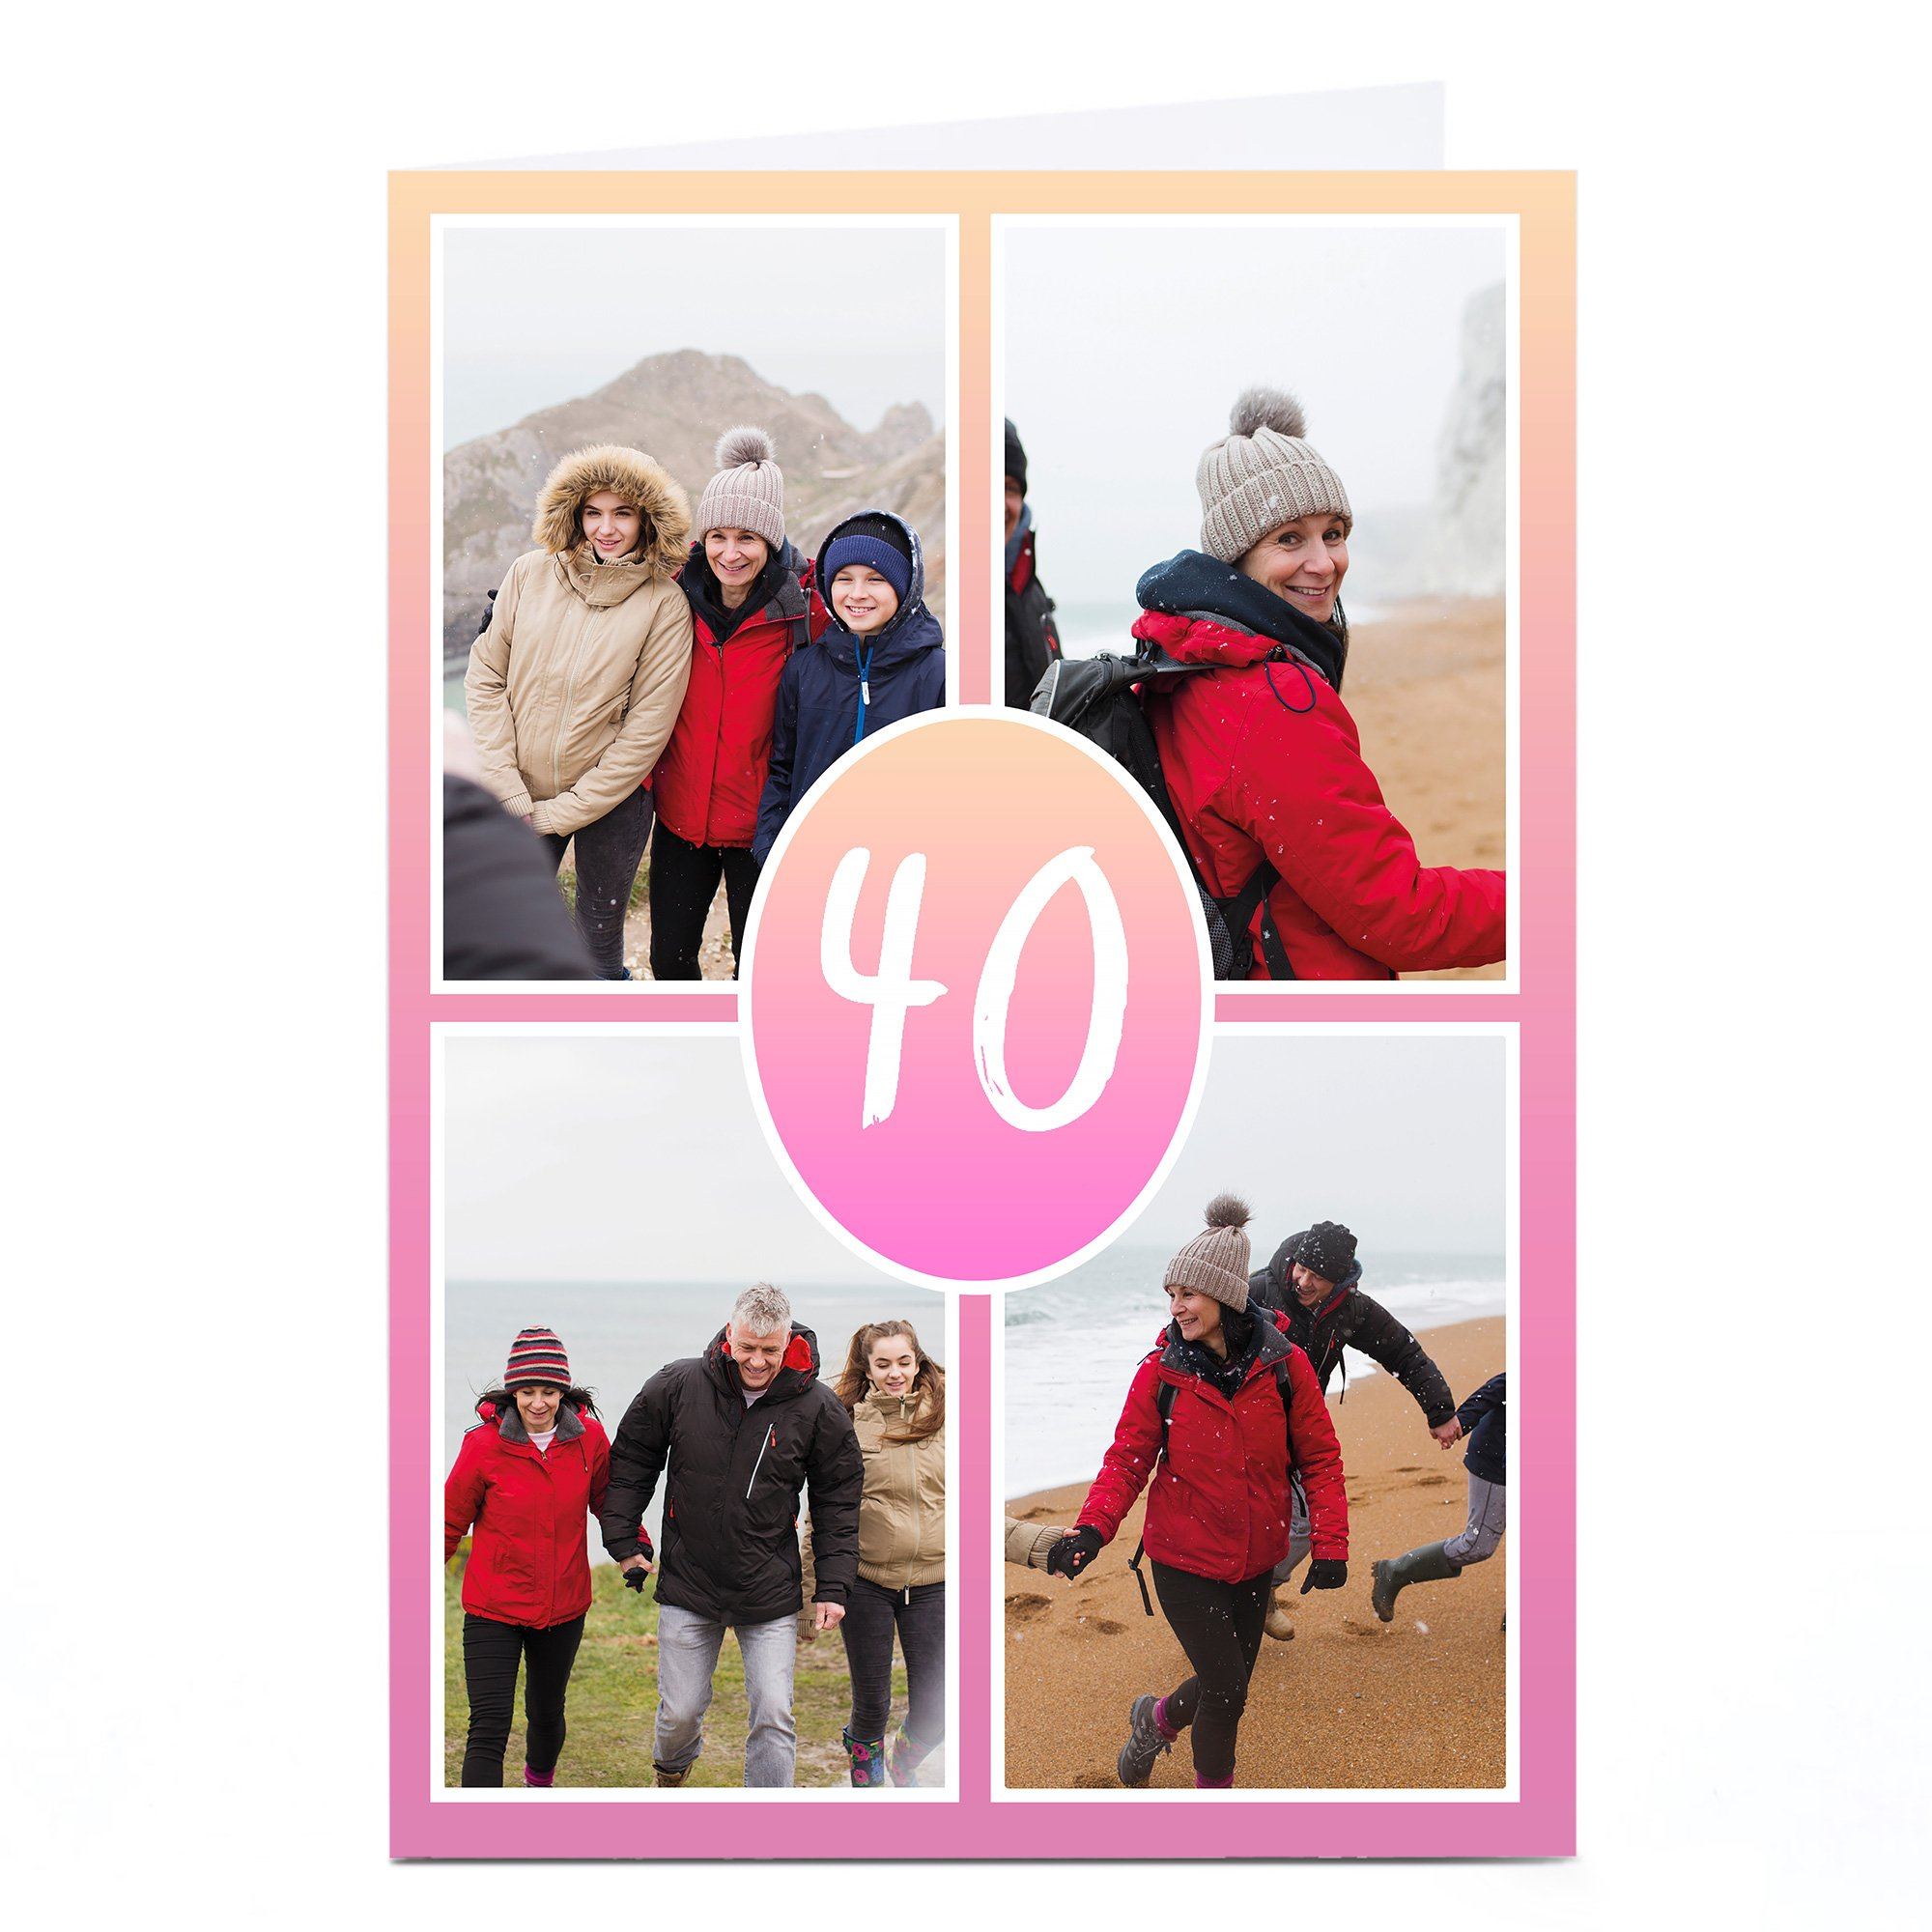 Personalised 40th Milestone Age Photo Card - Pink Gradient Editable Age